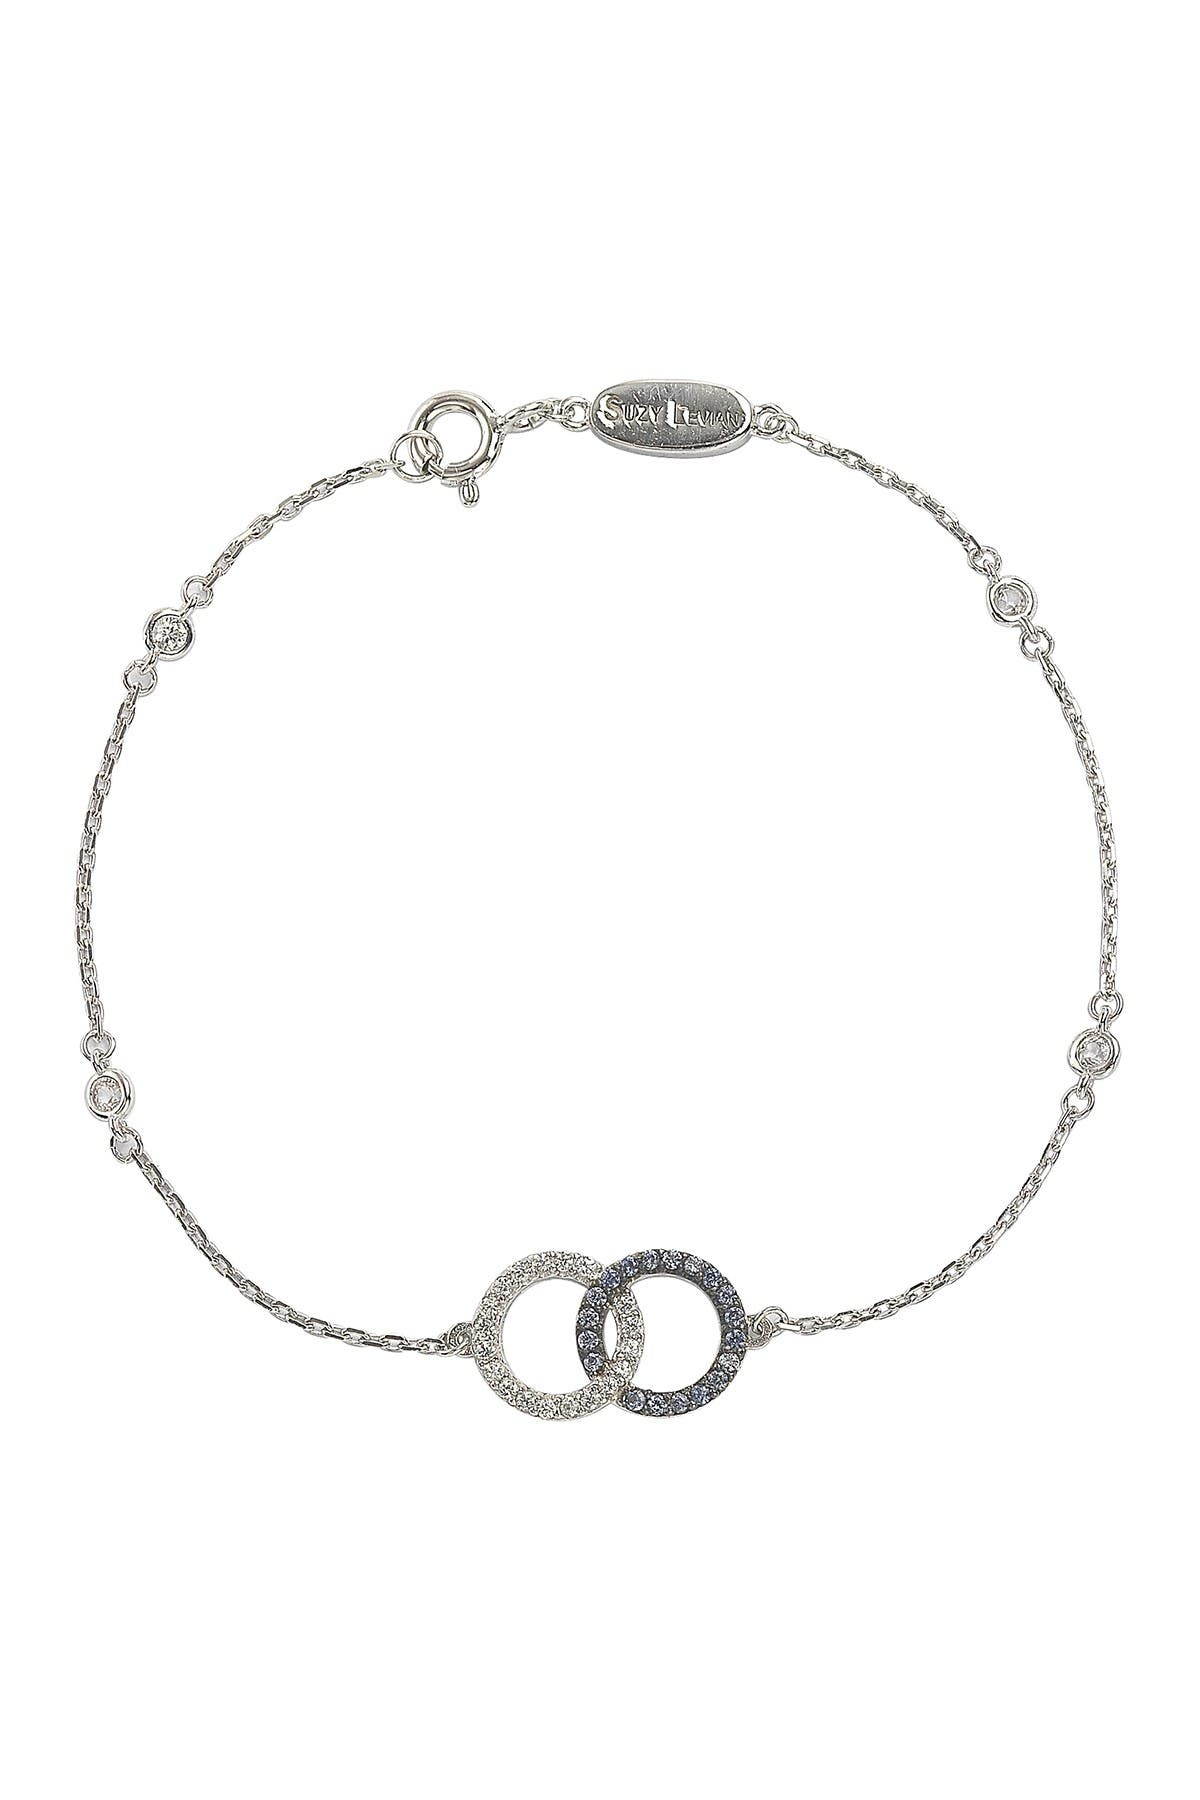 Image of Suzy Levian Sterling Silver Interlocked Circle Sapphire & Created Sapphire Station Bracelet